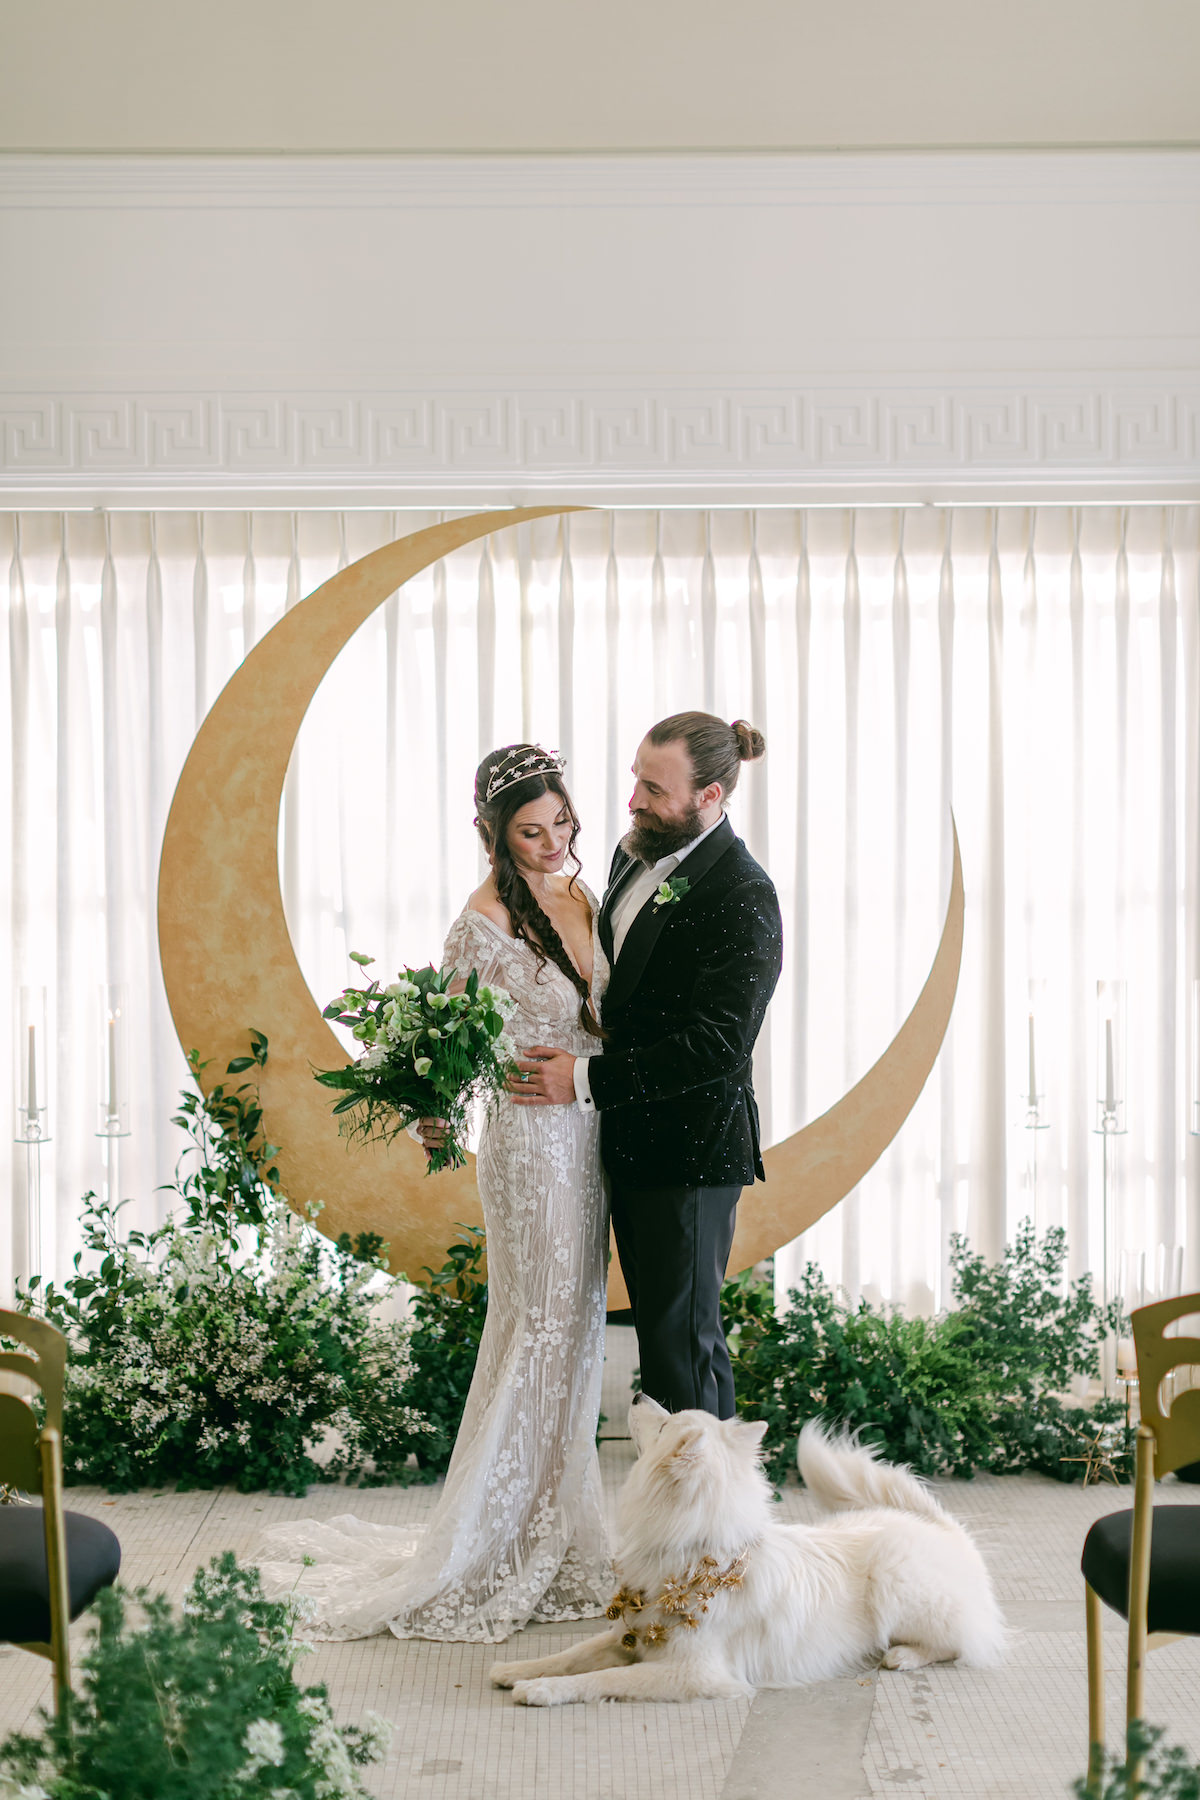 Celestial wedding inspiration - Lily Tapia Photography